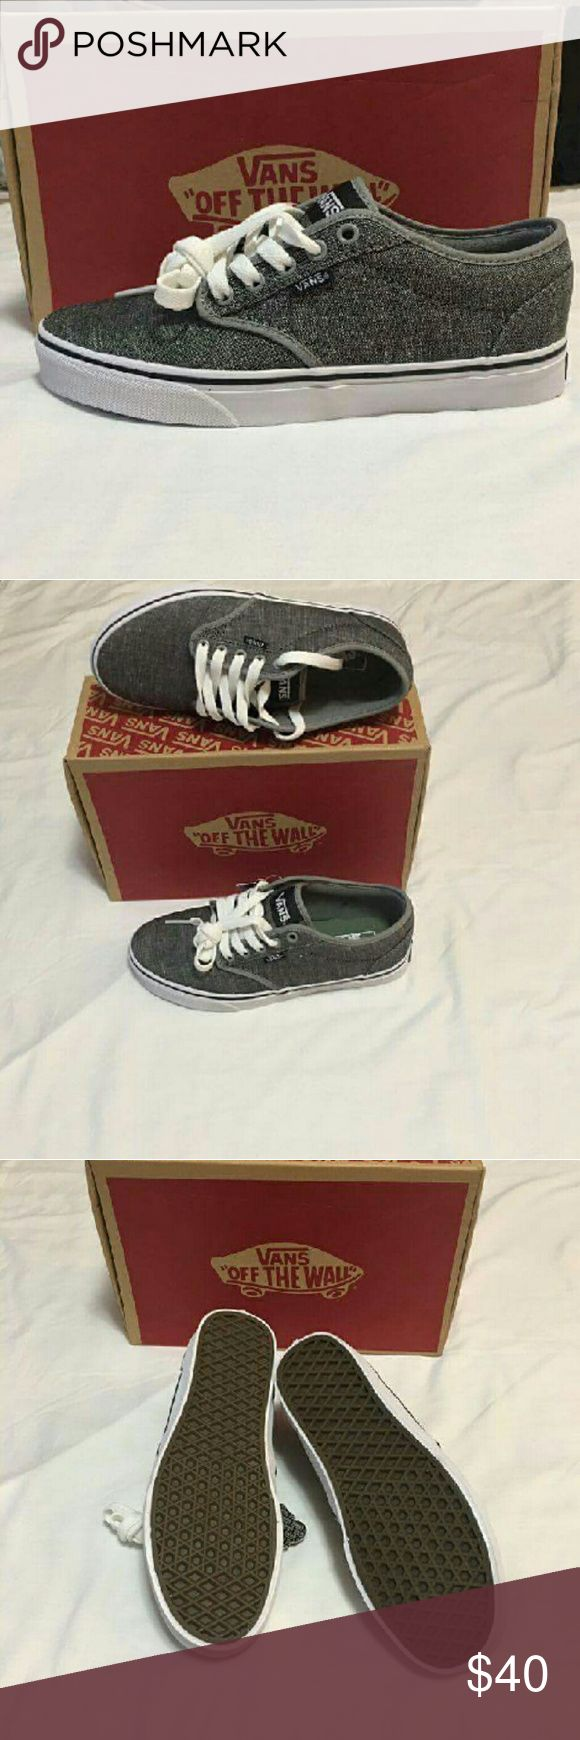 SALE Men's Vans Atwood Textile Gray and white. Canvas upper, rubber sole, padded tongue. 7.5 men = 9.5 women. Vans Shoes Sneakers